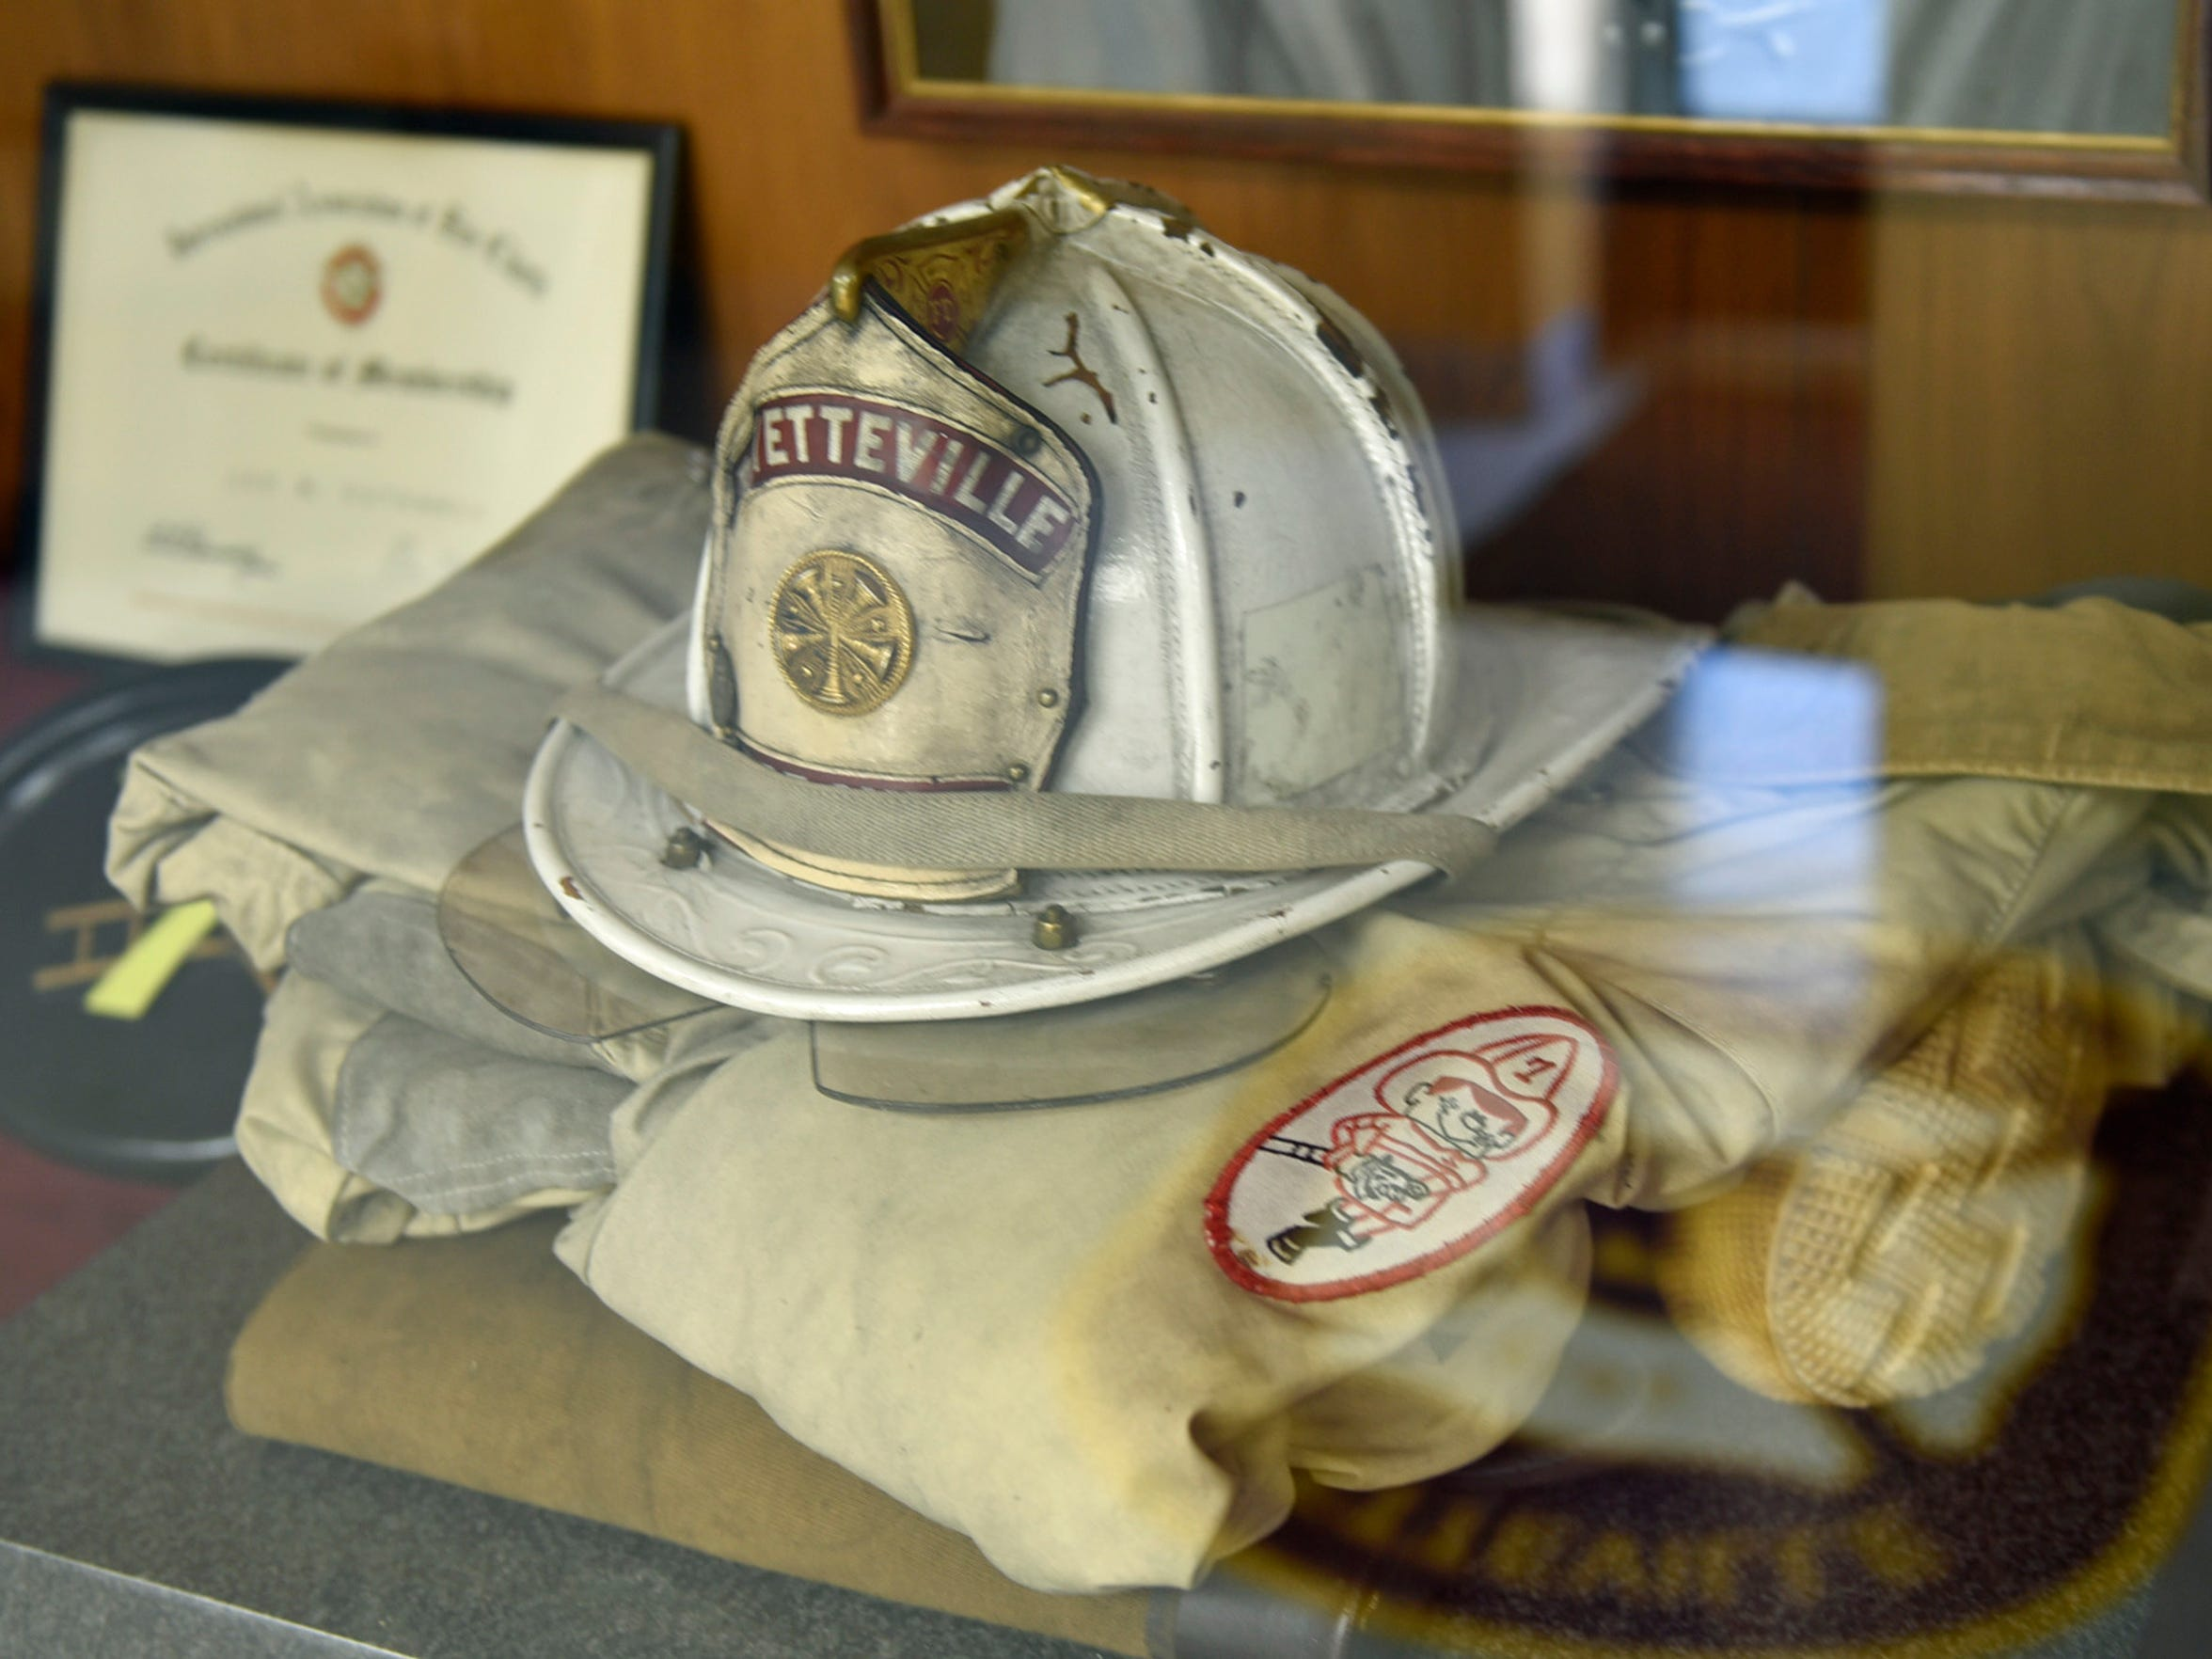 """A memorial dedicated to Cutchall is at Fayetteville Fire Dept. Main Street in Fayetteville has been renamed after firefighter James """"Jim"""" Cutchall who was killed by a sniper in July 1977 while responding to a fire alarm."""